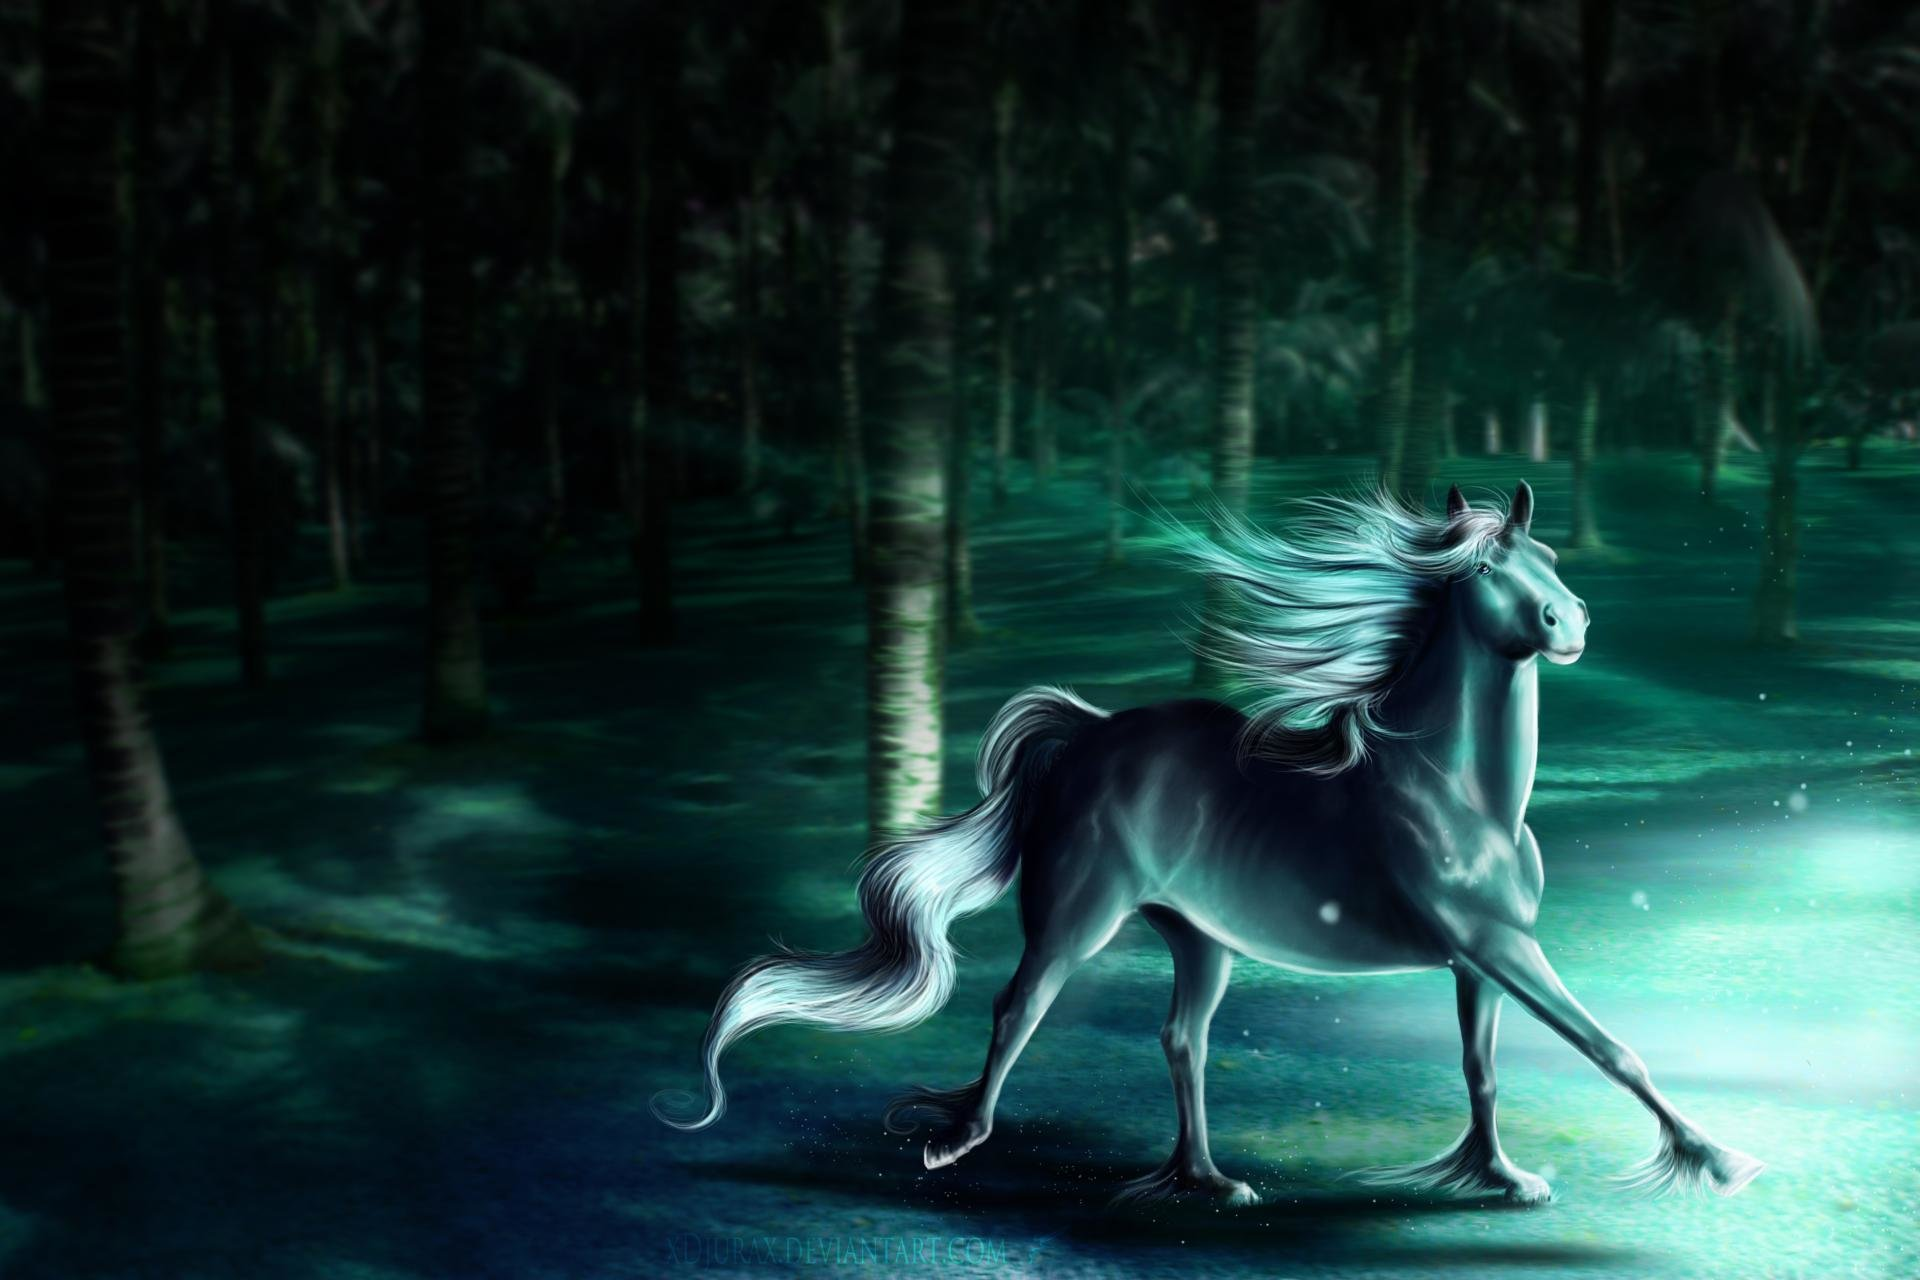 Download Hd 1920x1280 Horse Fantasy Computer Wallpaper Id282538 For Free